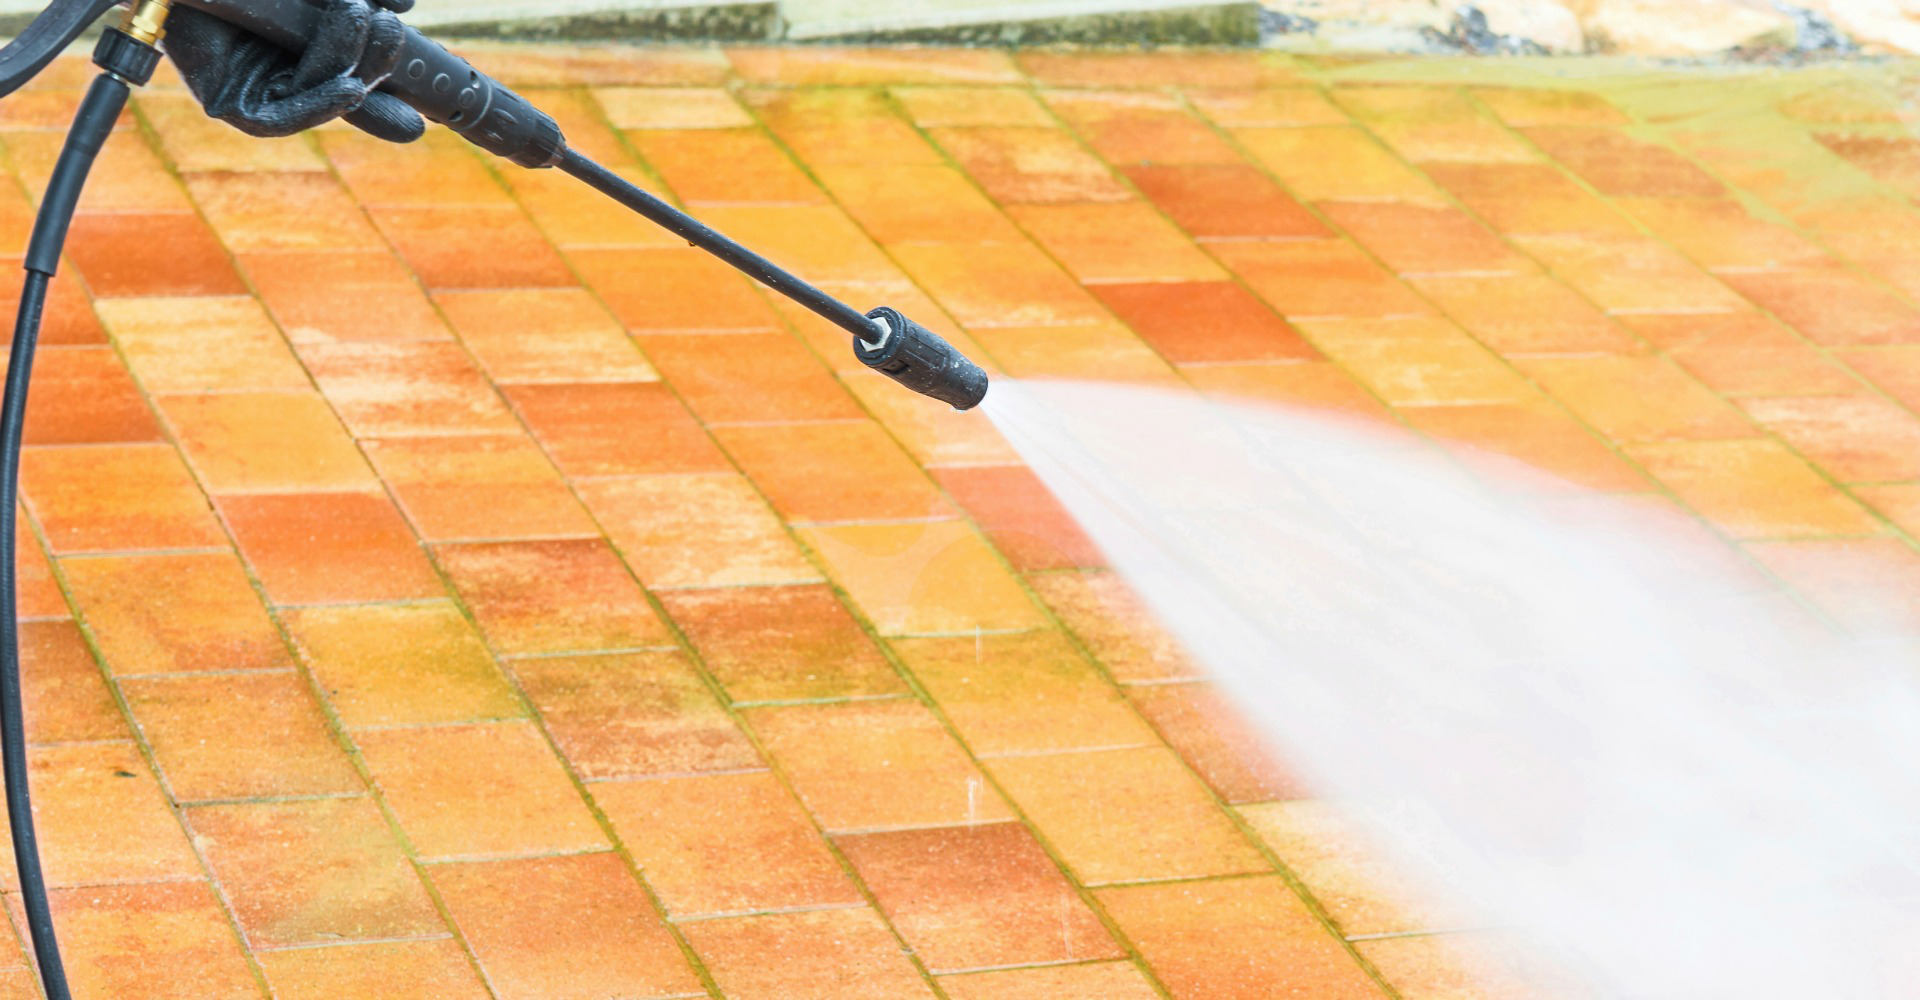 Pressure cleaning outdoor floor with high pressure water jet